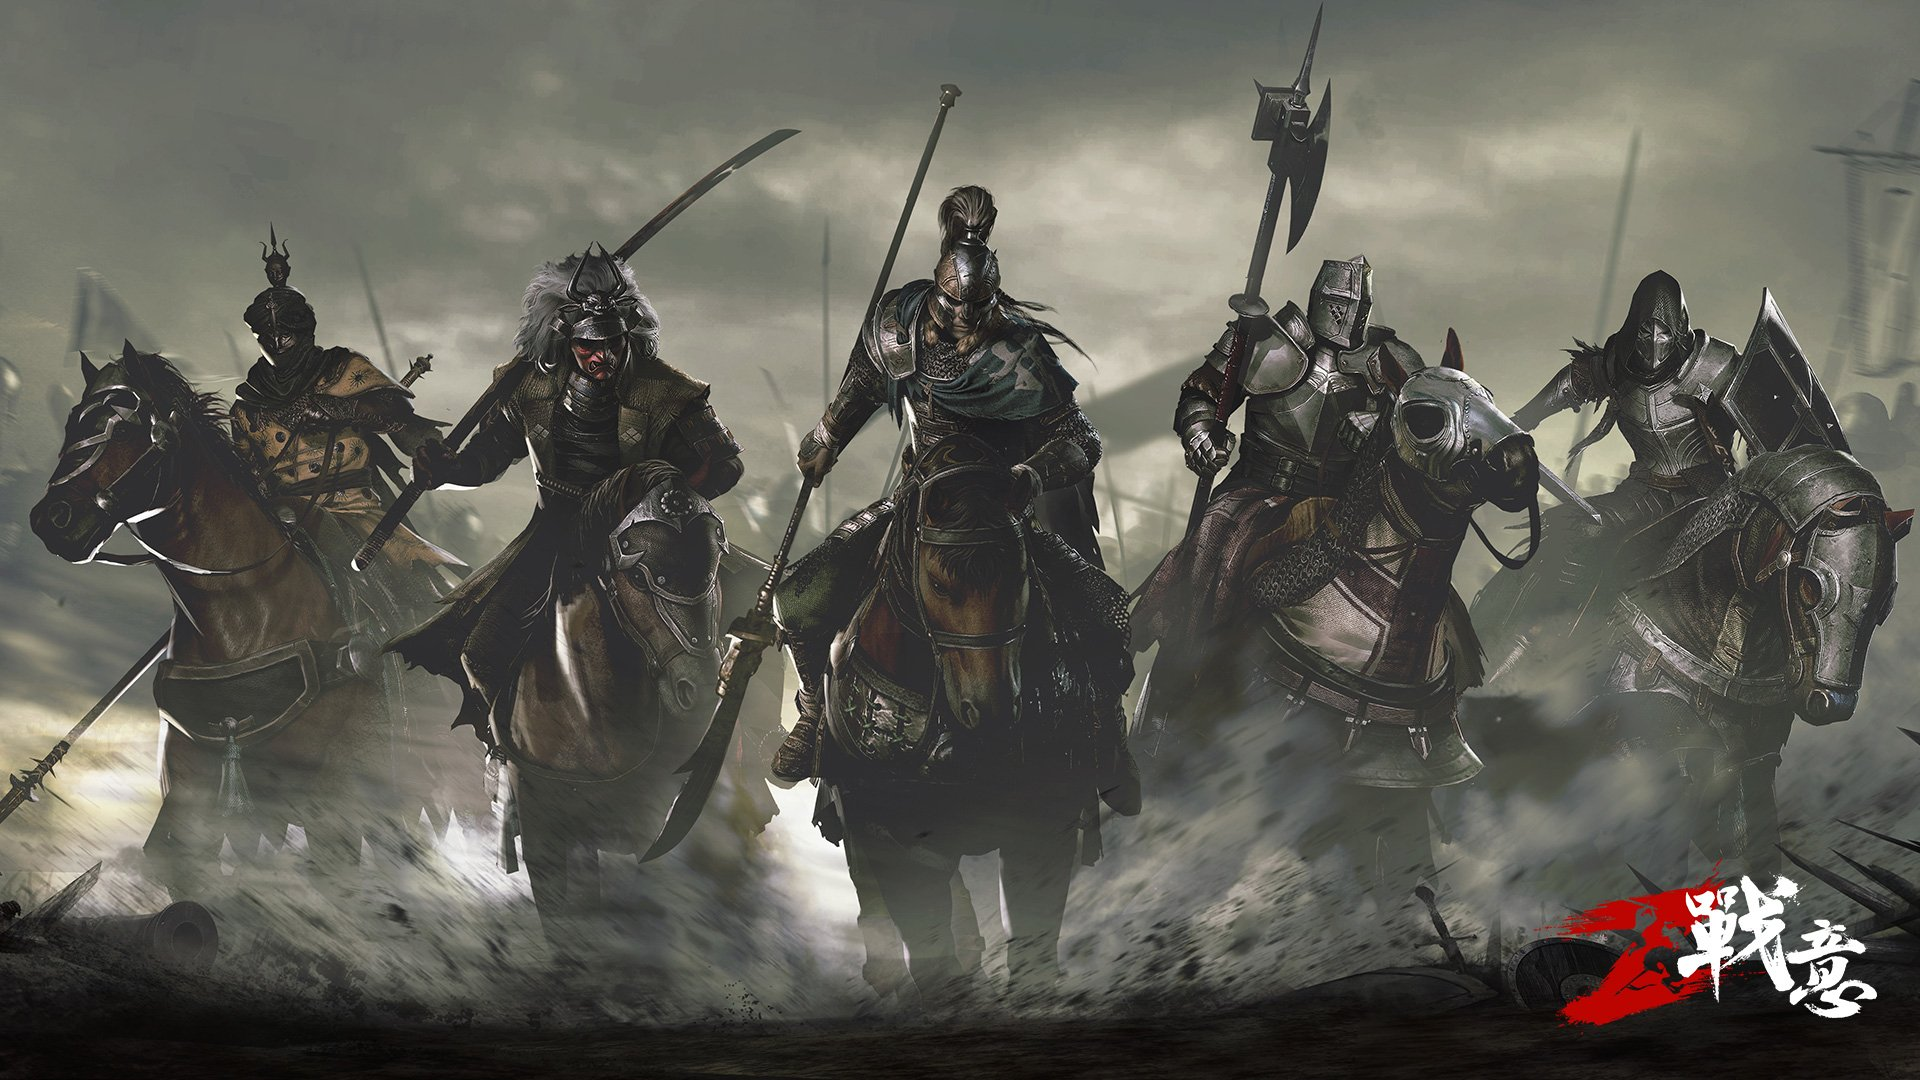 Conquerors Blade HD Wallpaper Background Image 1920x1080 ID 1920x1080